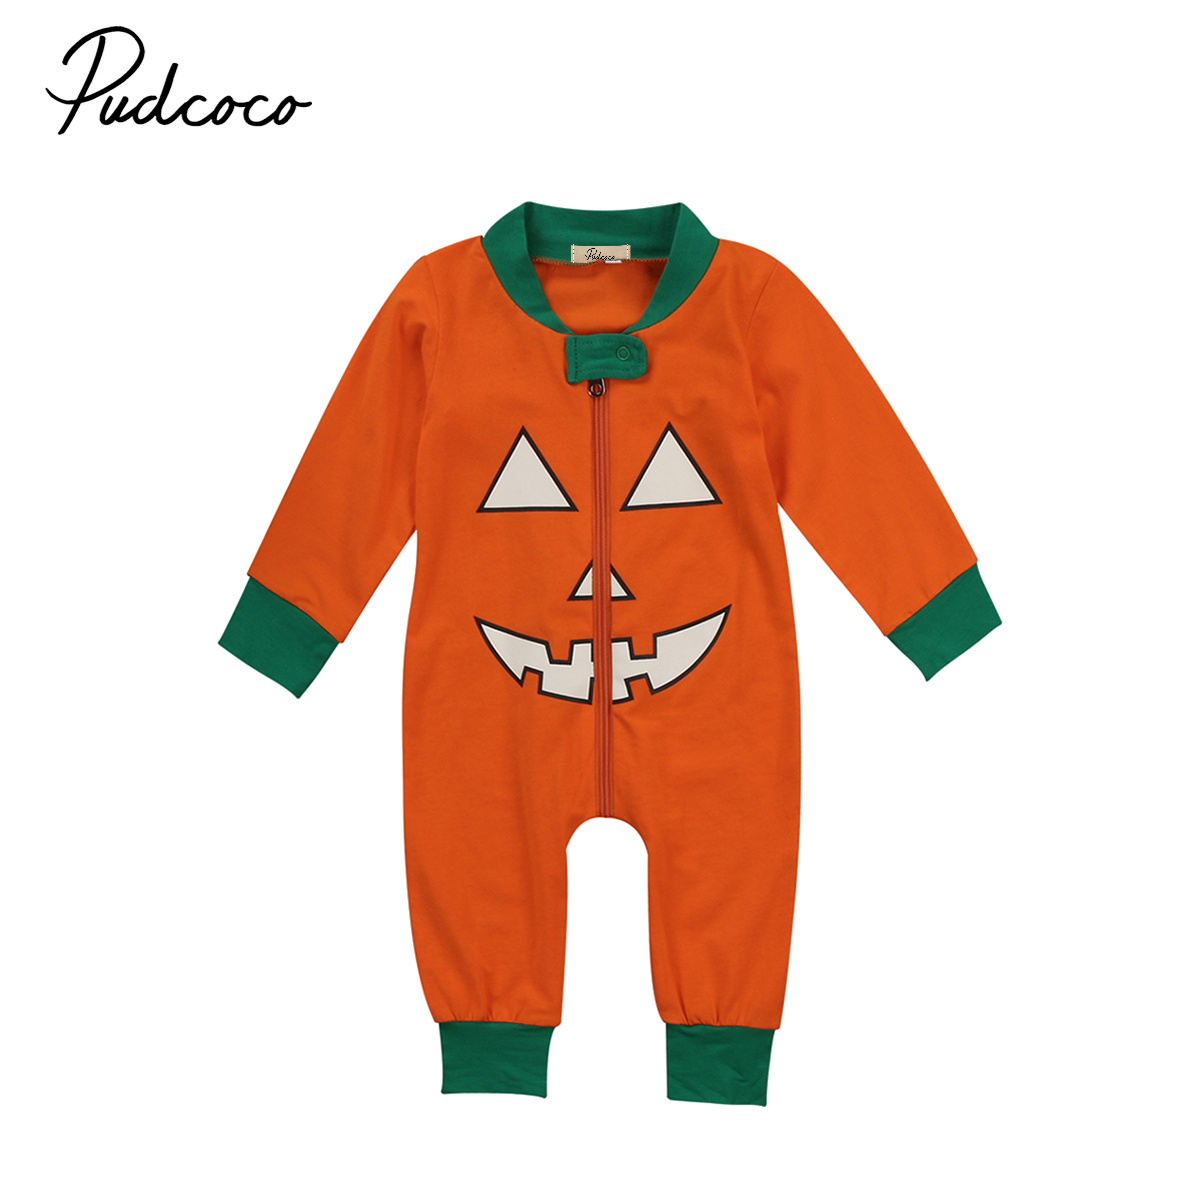 Pudcoco Newborn Infant Baby Kids Girls Boys Hallowen Pumpkin Long Sleeve Cotton Romper Playsuit Tops Outfit Clothes Sets puseky 2017 infant romper baby boys girls jumpsuit newborn bebe clothing hooded toddler baby clothes cute panda romper costumes